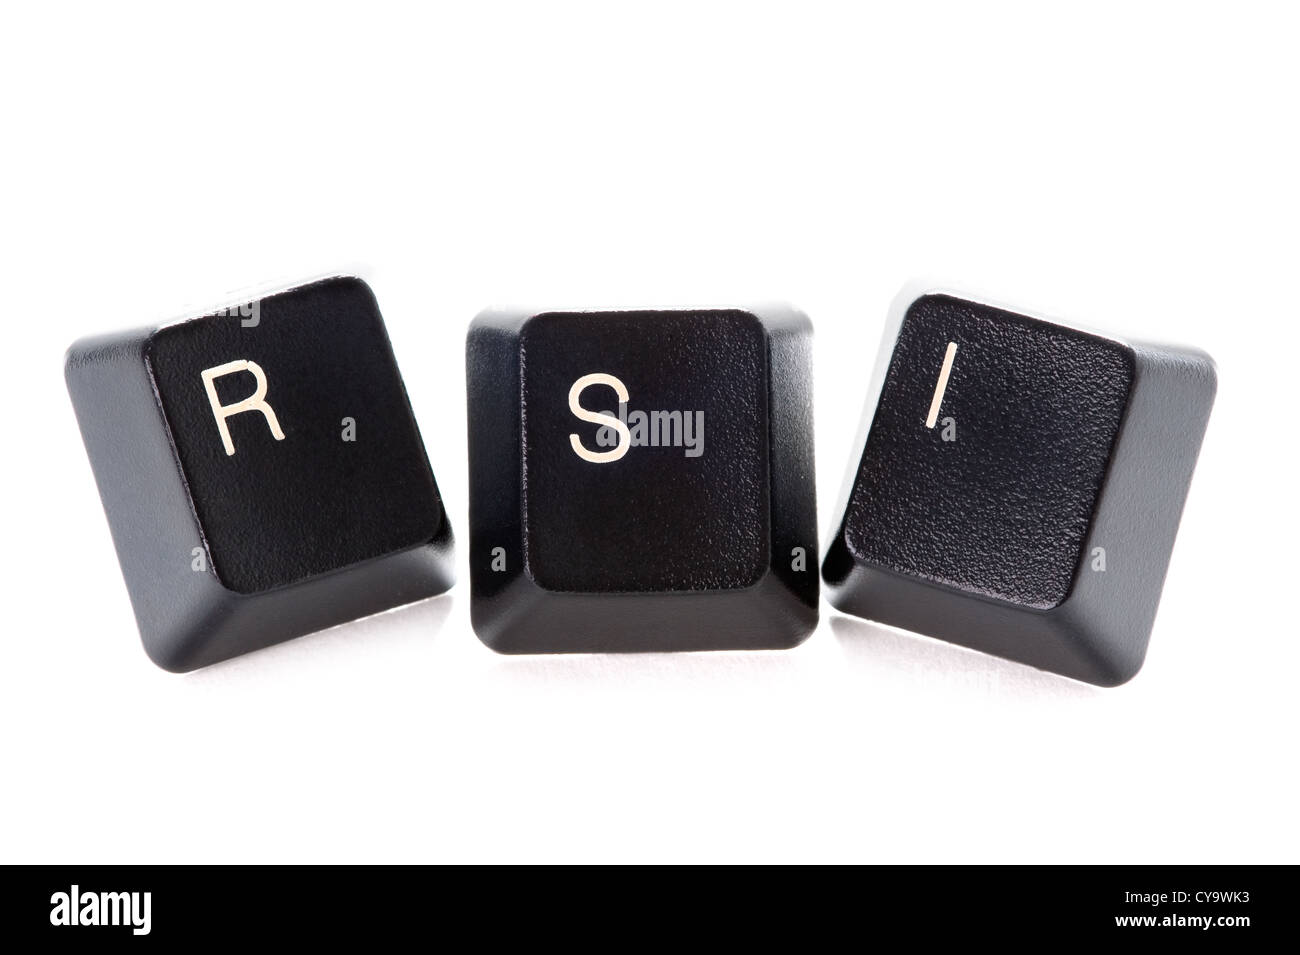 computer letters spelling rsi represents repetitive strain injury - Stock Image